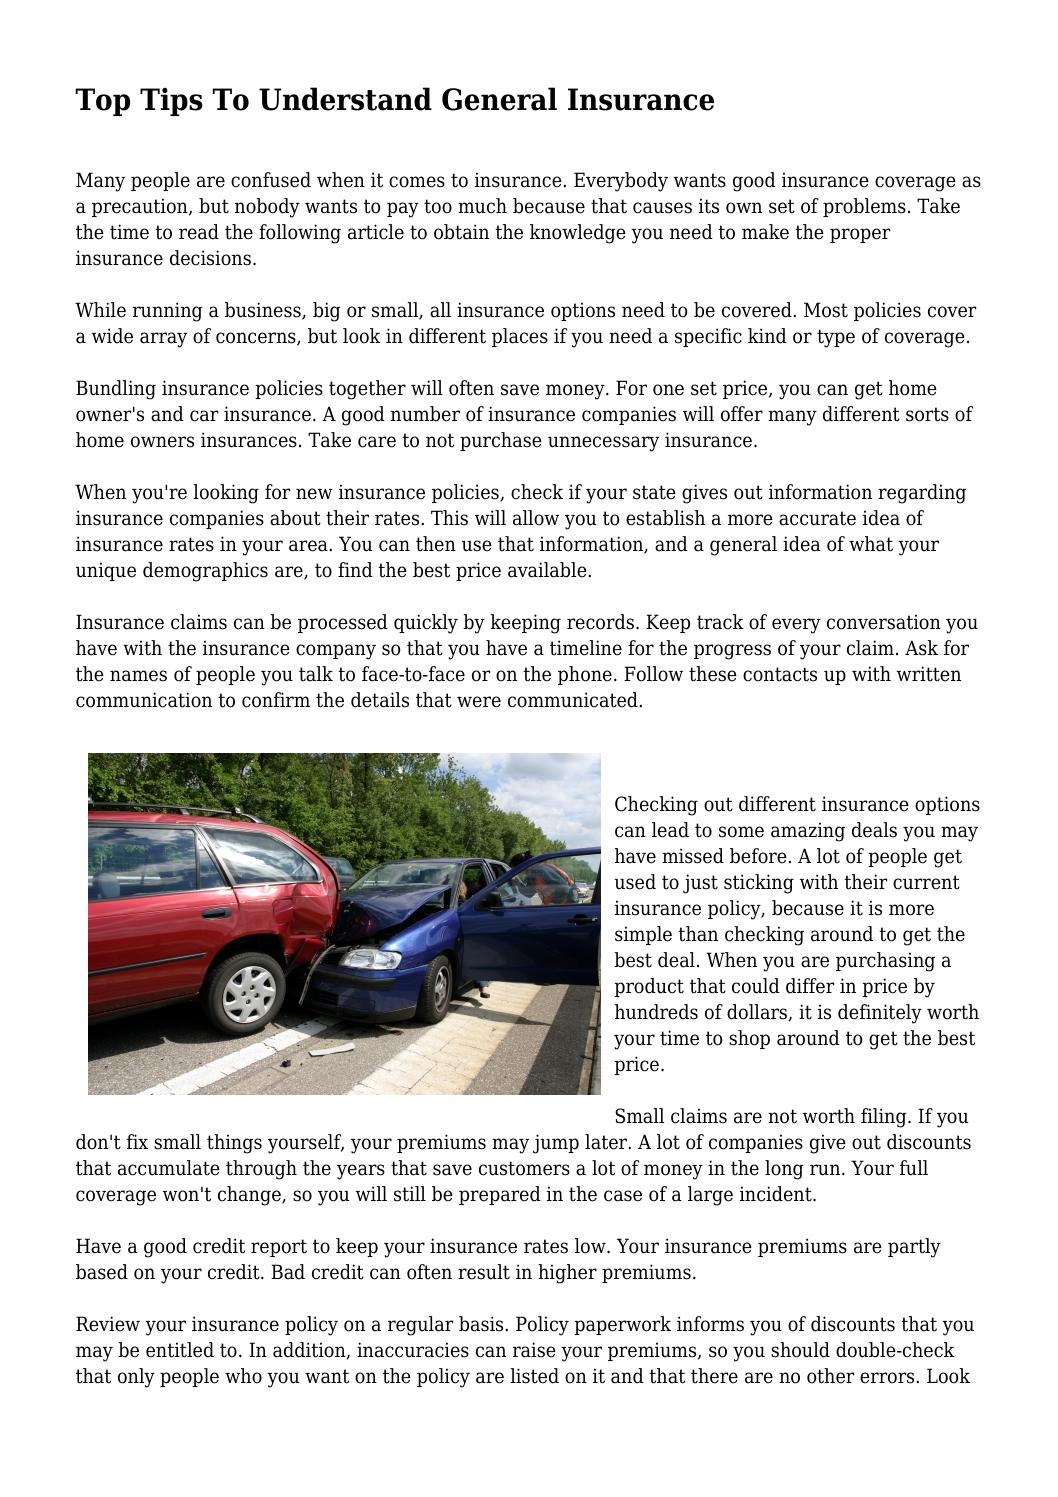 Top Tips To Understand General Insurance By Holisticdemogra93 Issuu